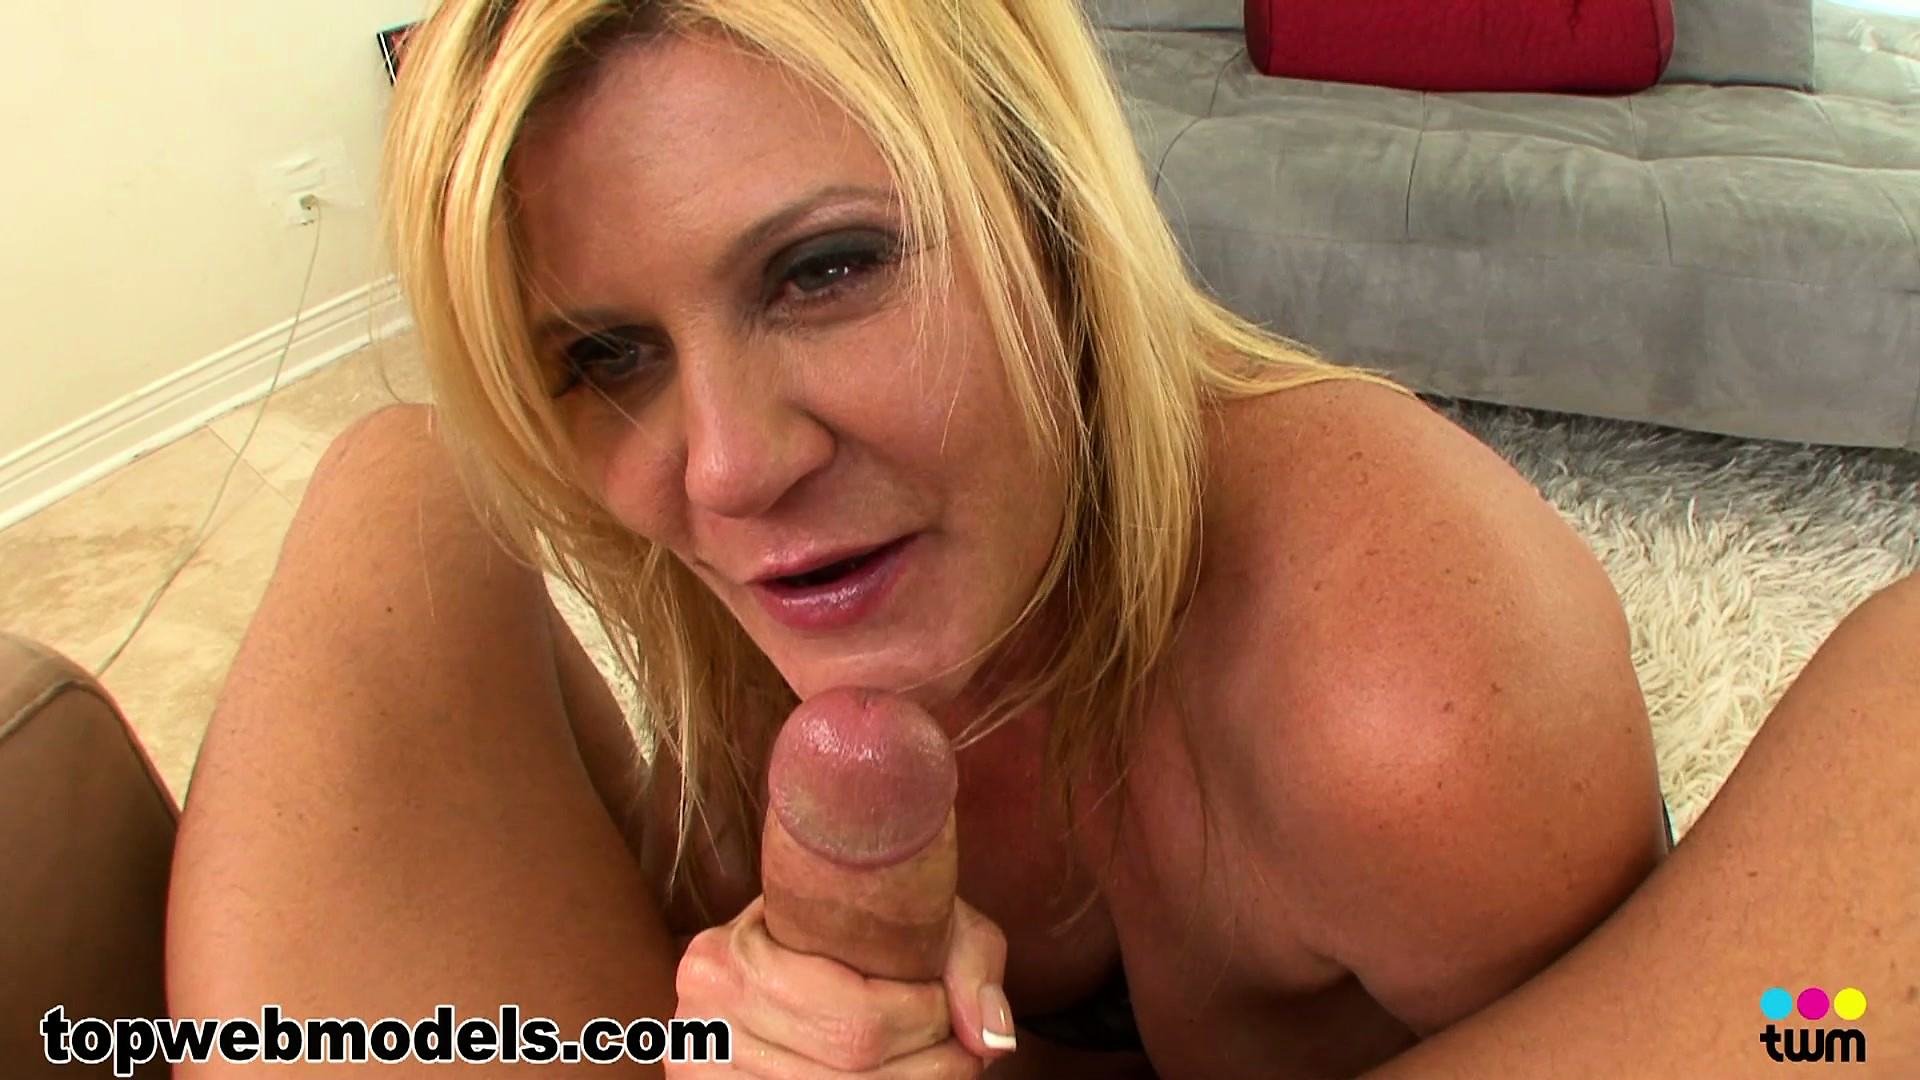 Porno Video of Ginger Lynn Takes His Cock In Her Mouth While Fondling Her Tits